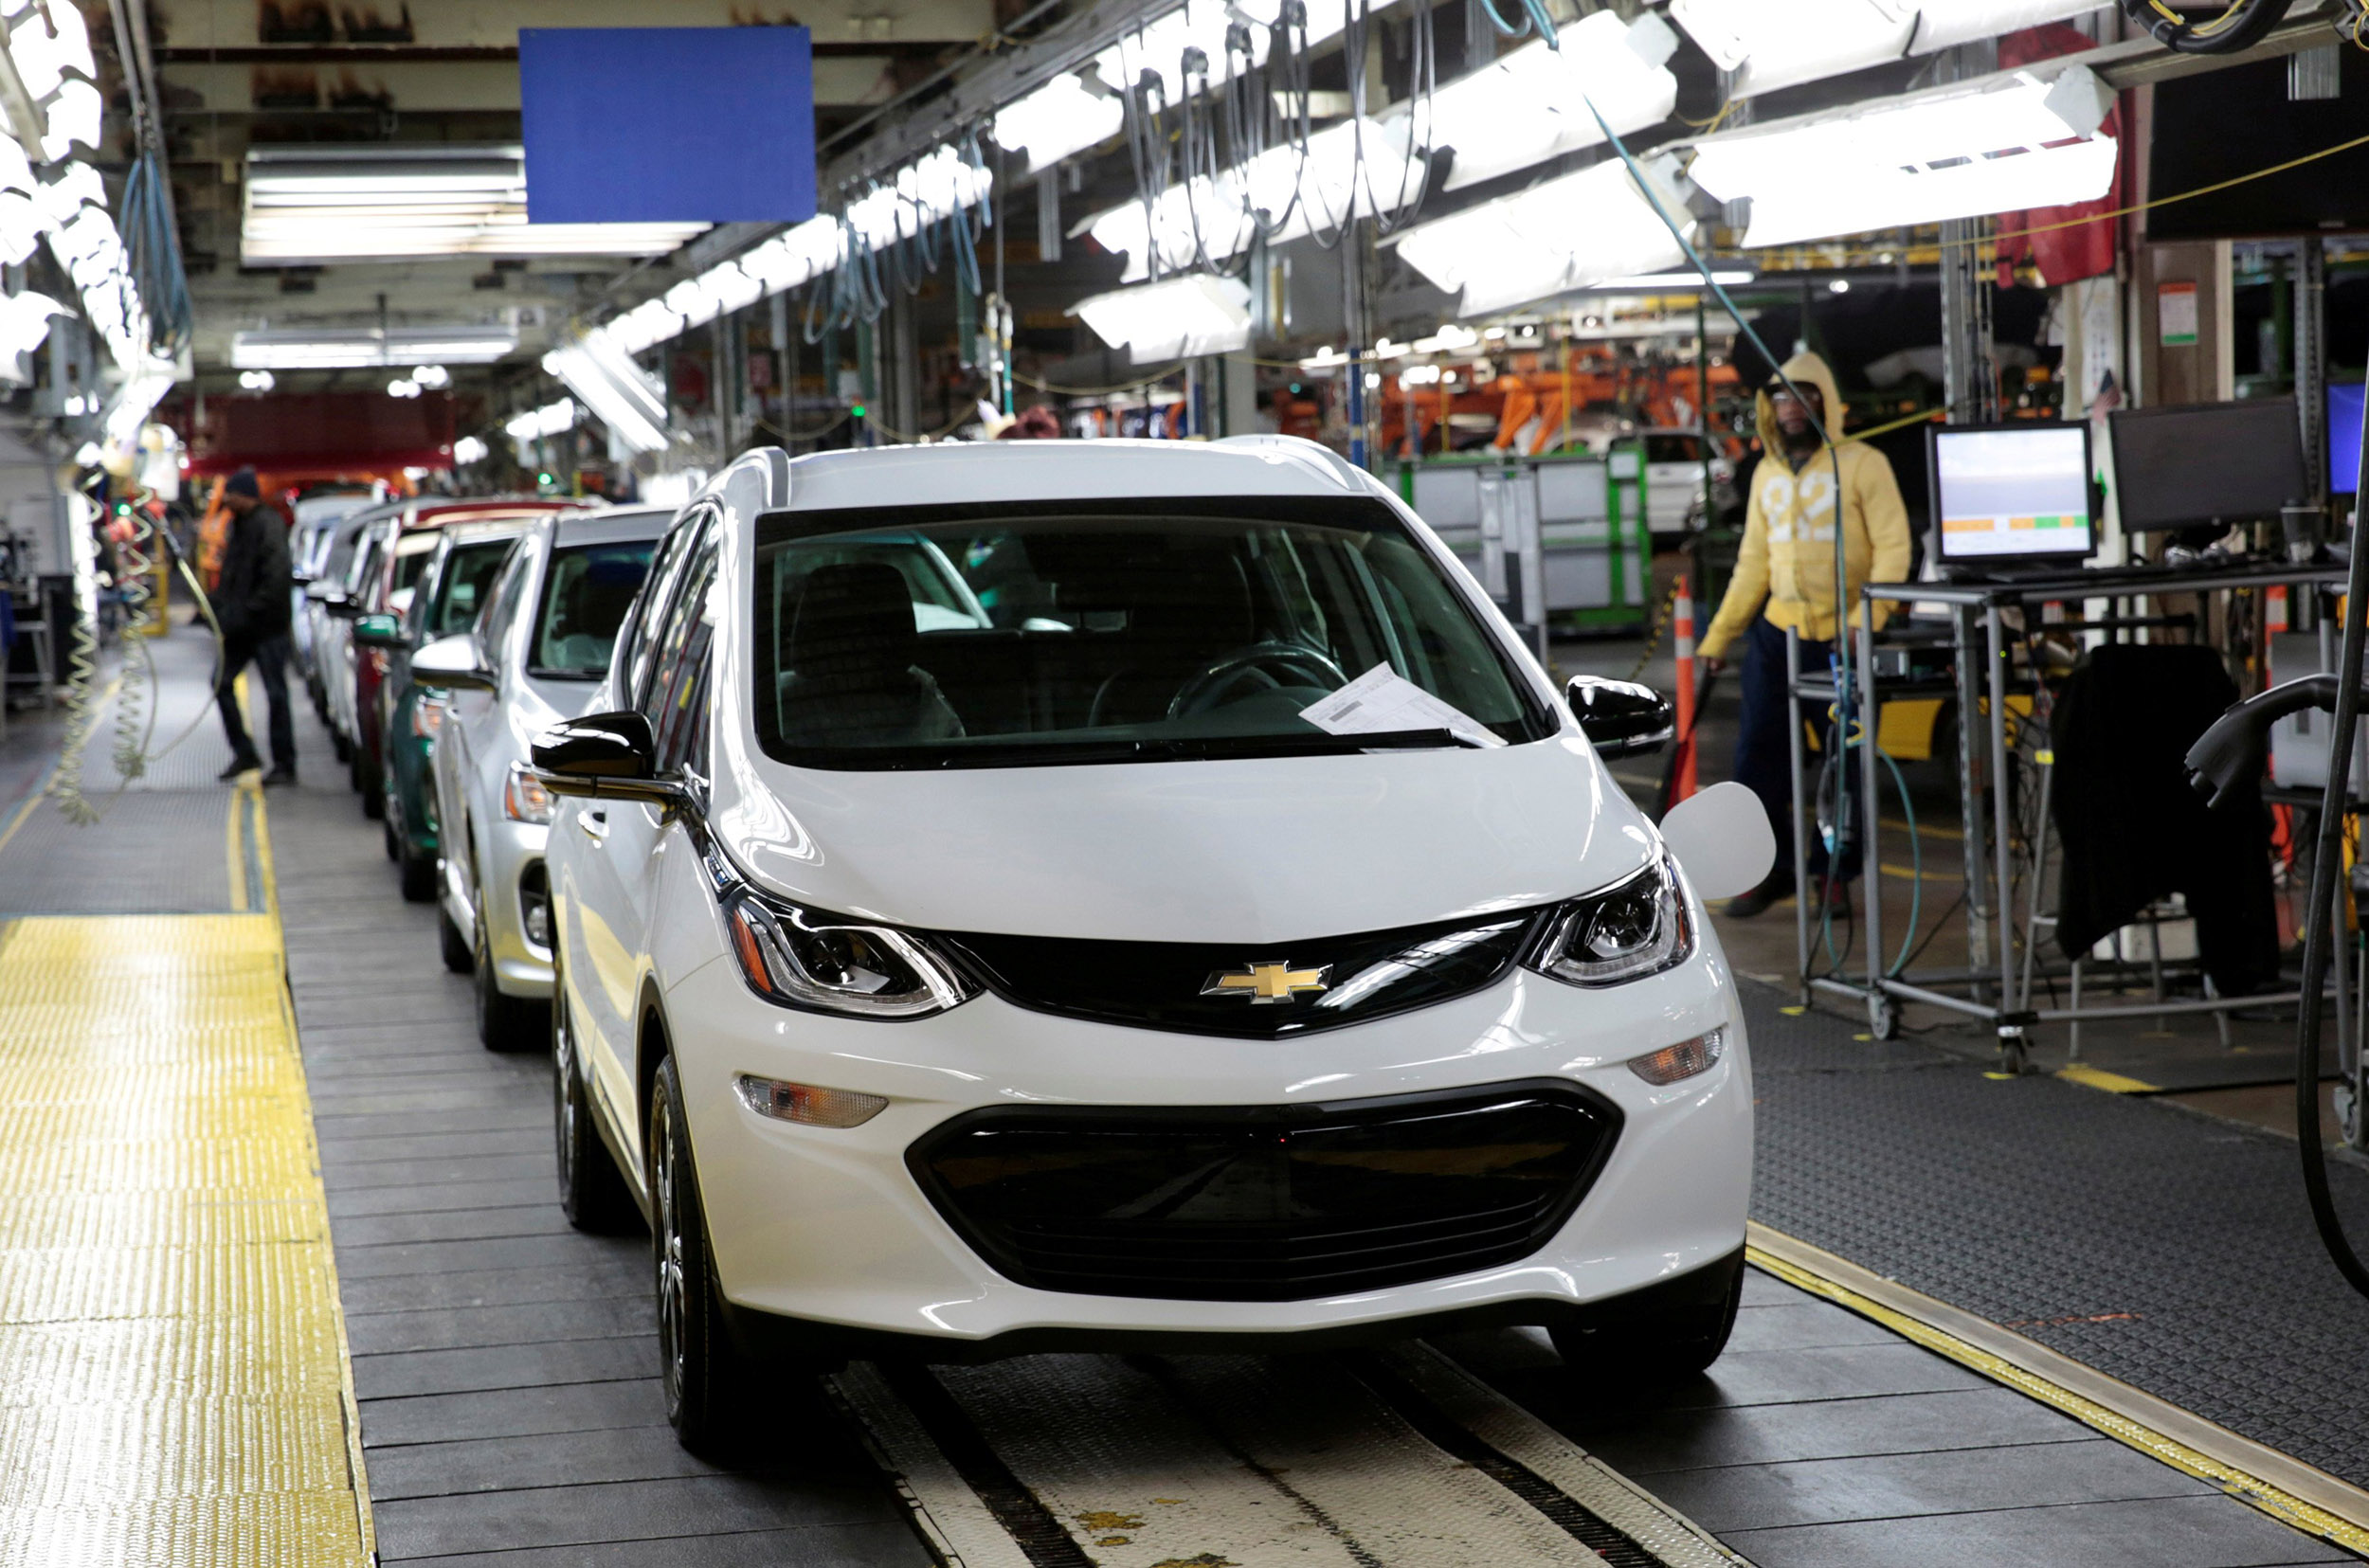 GM recalls all 2019 and newer Chevrolet Bolts